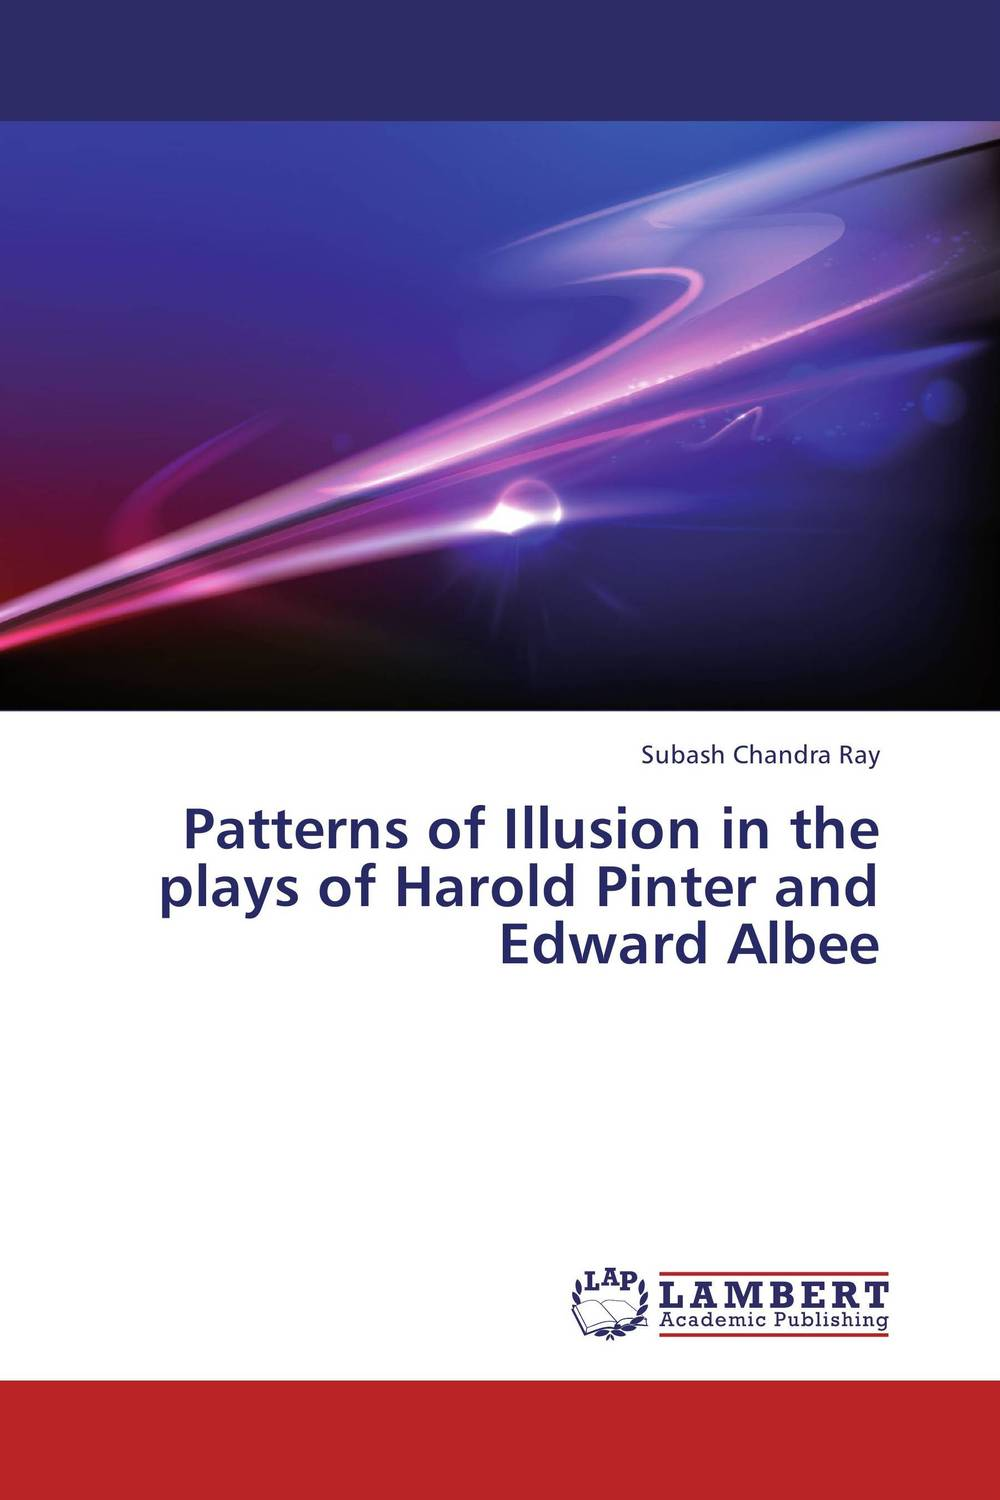 Patterns of Illusion in the plays of Harold Pinter and Edward Albee the illusion of science